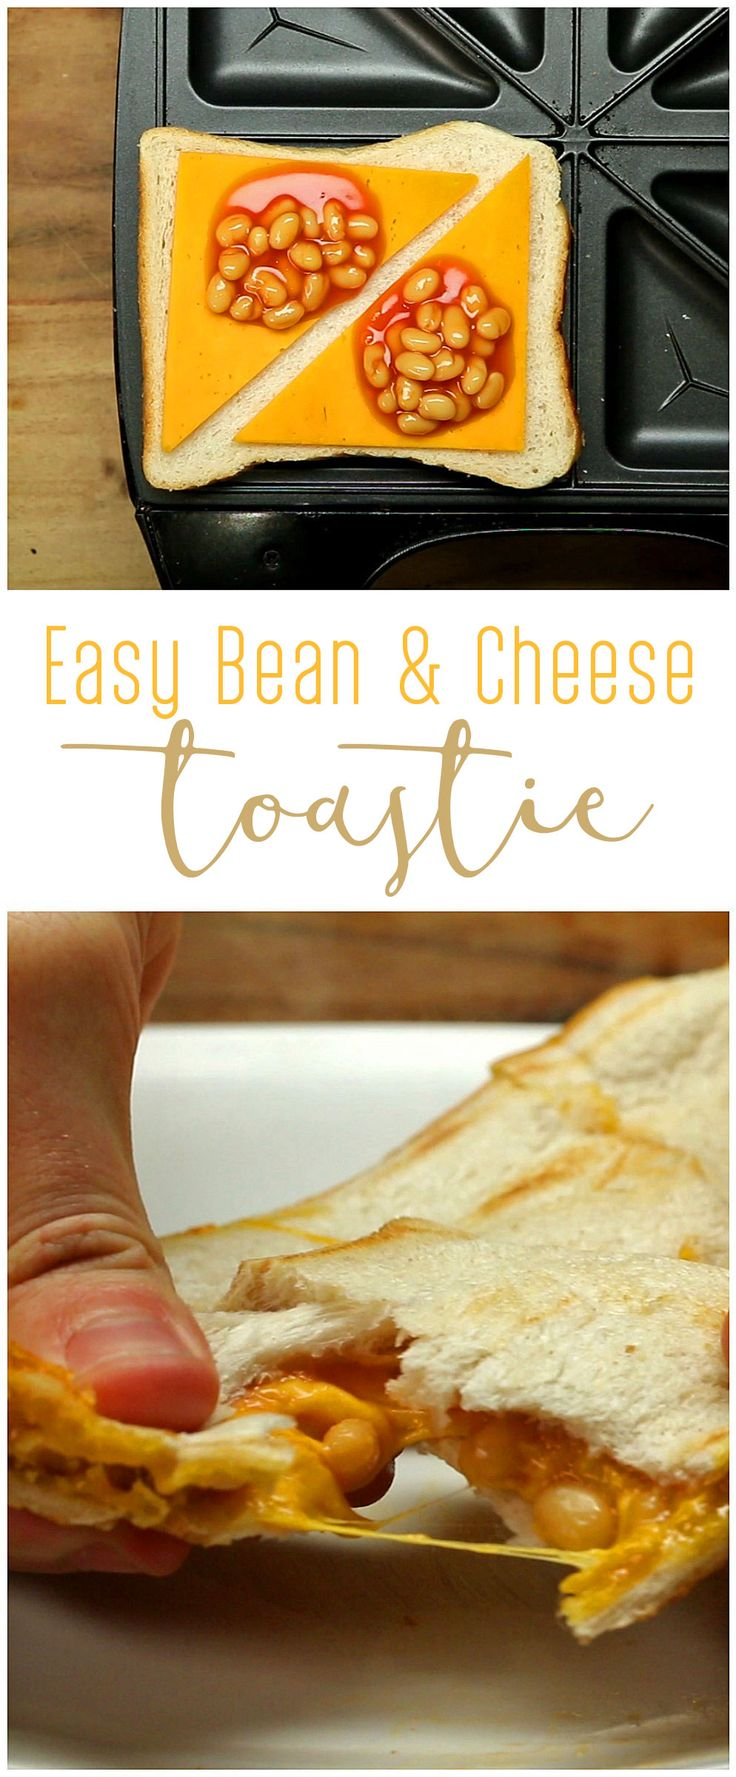 Great after school snack - we make it all the time! Easy Bean & Cheese Toastie